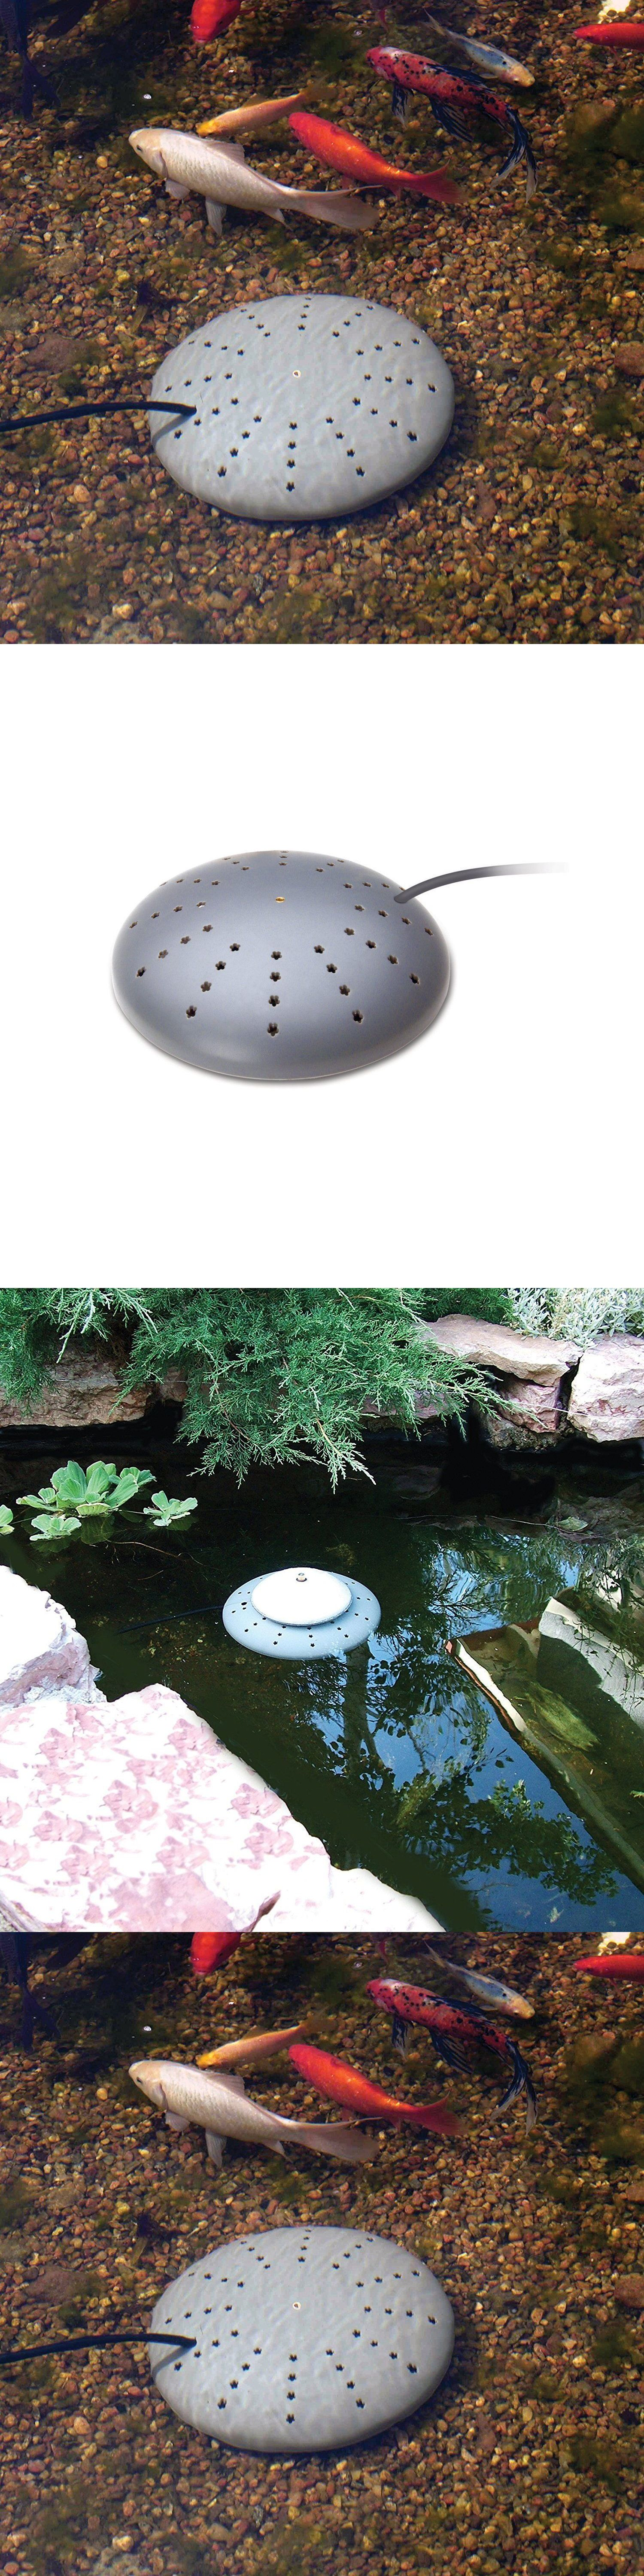 Pond De Icers 157813 Submersible Pond De Icer Heater Garden Backyard Lake Fish Winter Remove Ice Farm Buy It Now Only 49 9 Fish Pond Pond Perfect Climate